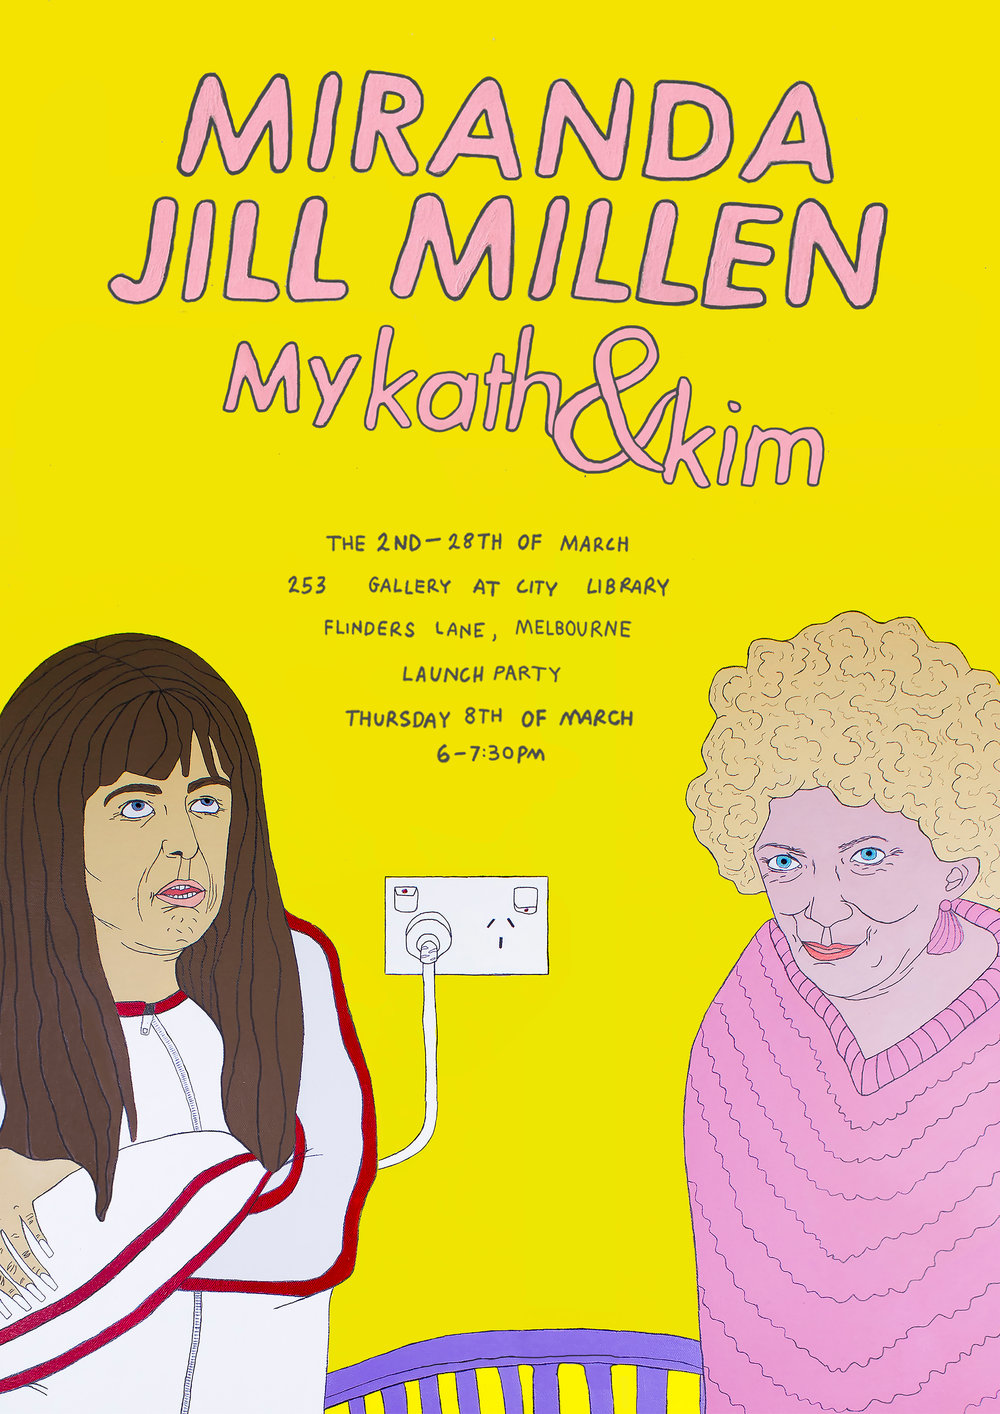 In celebration of one of the most iconic television programs in Australia, Miranda Jill Millen welcomes you to her solo exhibition 'Miranda Jill Millen: My Kath & Kim'. Through a mixture of paintings and ceramic sculptures Miranda pursues her childhood nostalgia, and rejoices in the parody of iconic Australian culture. An event not to be missed and with a kardonnay in hand, a footy frank in the other, and exhibition that is bound to be very noice, different and unusual.